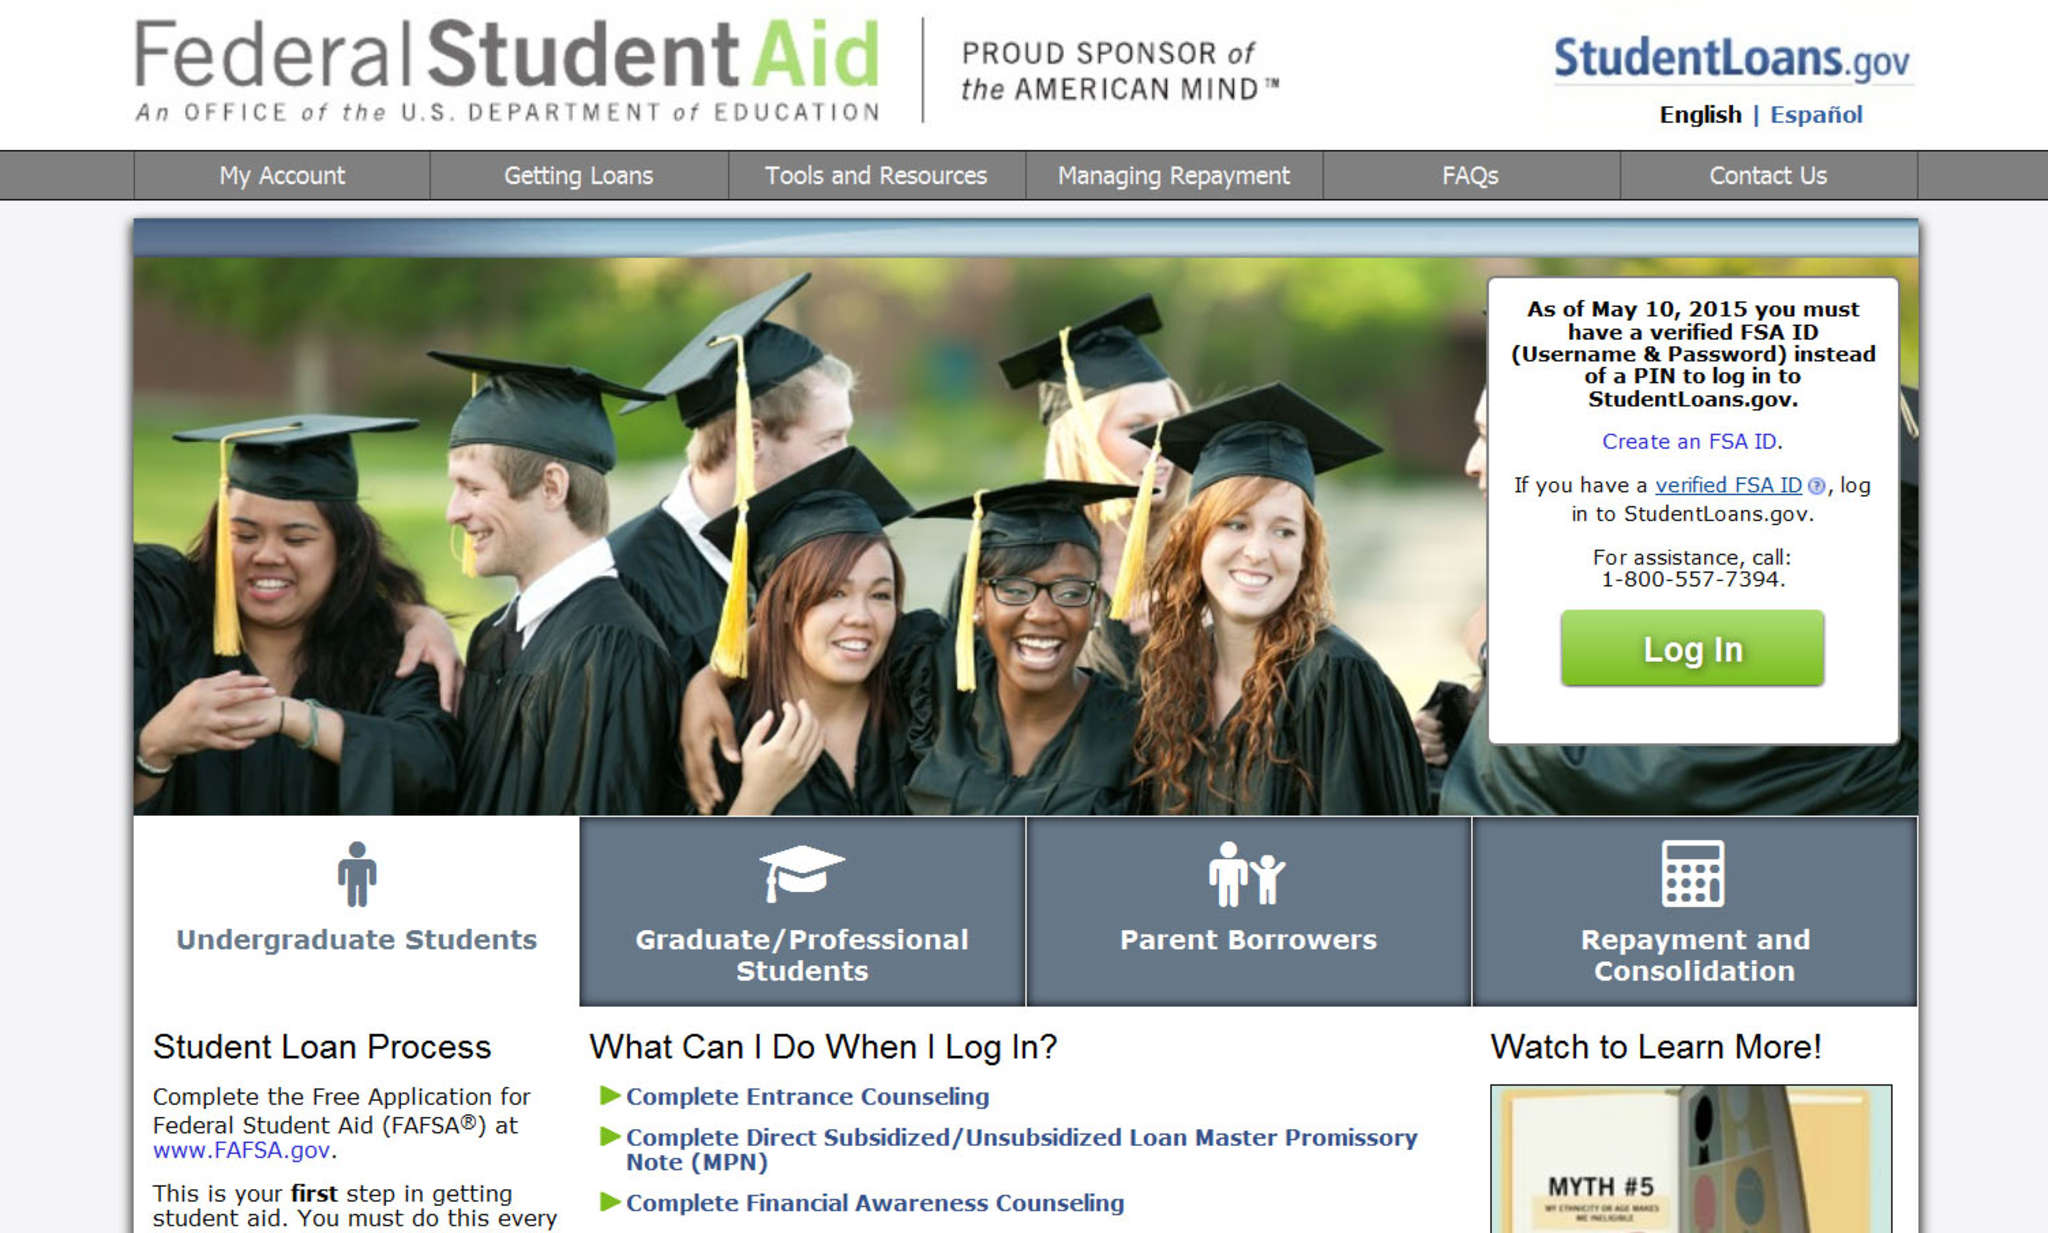 The www.studentloans.gov website is a good place to begin your research about student loans.